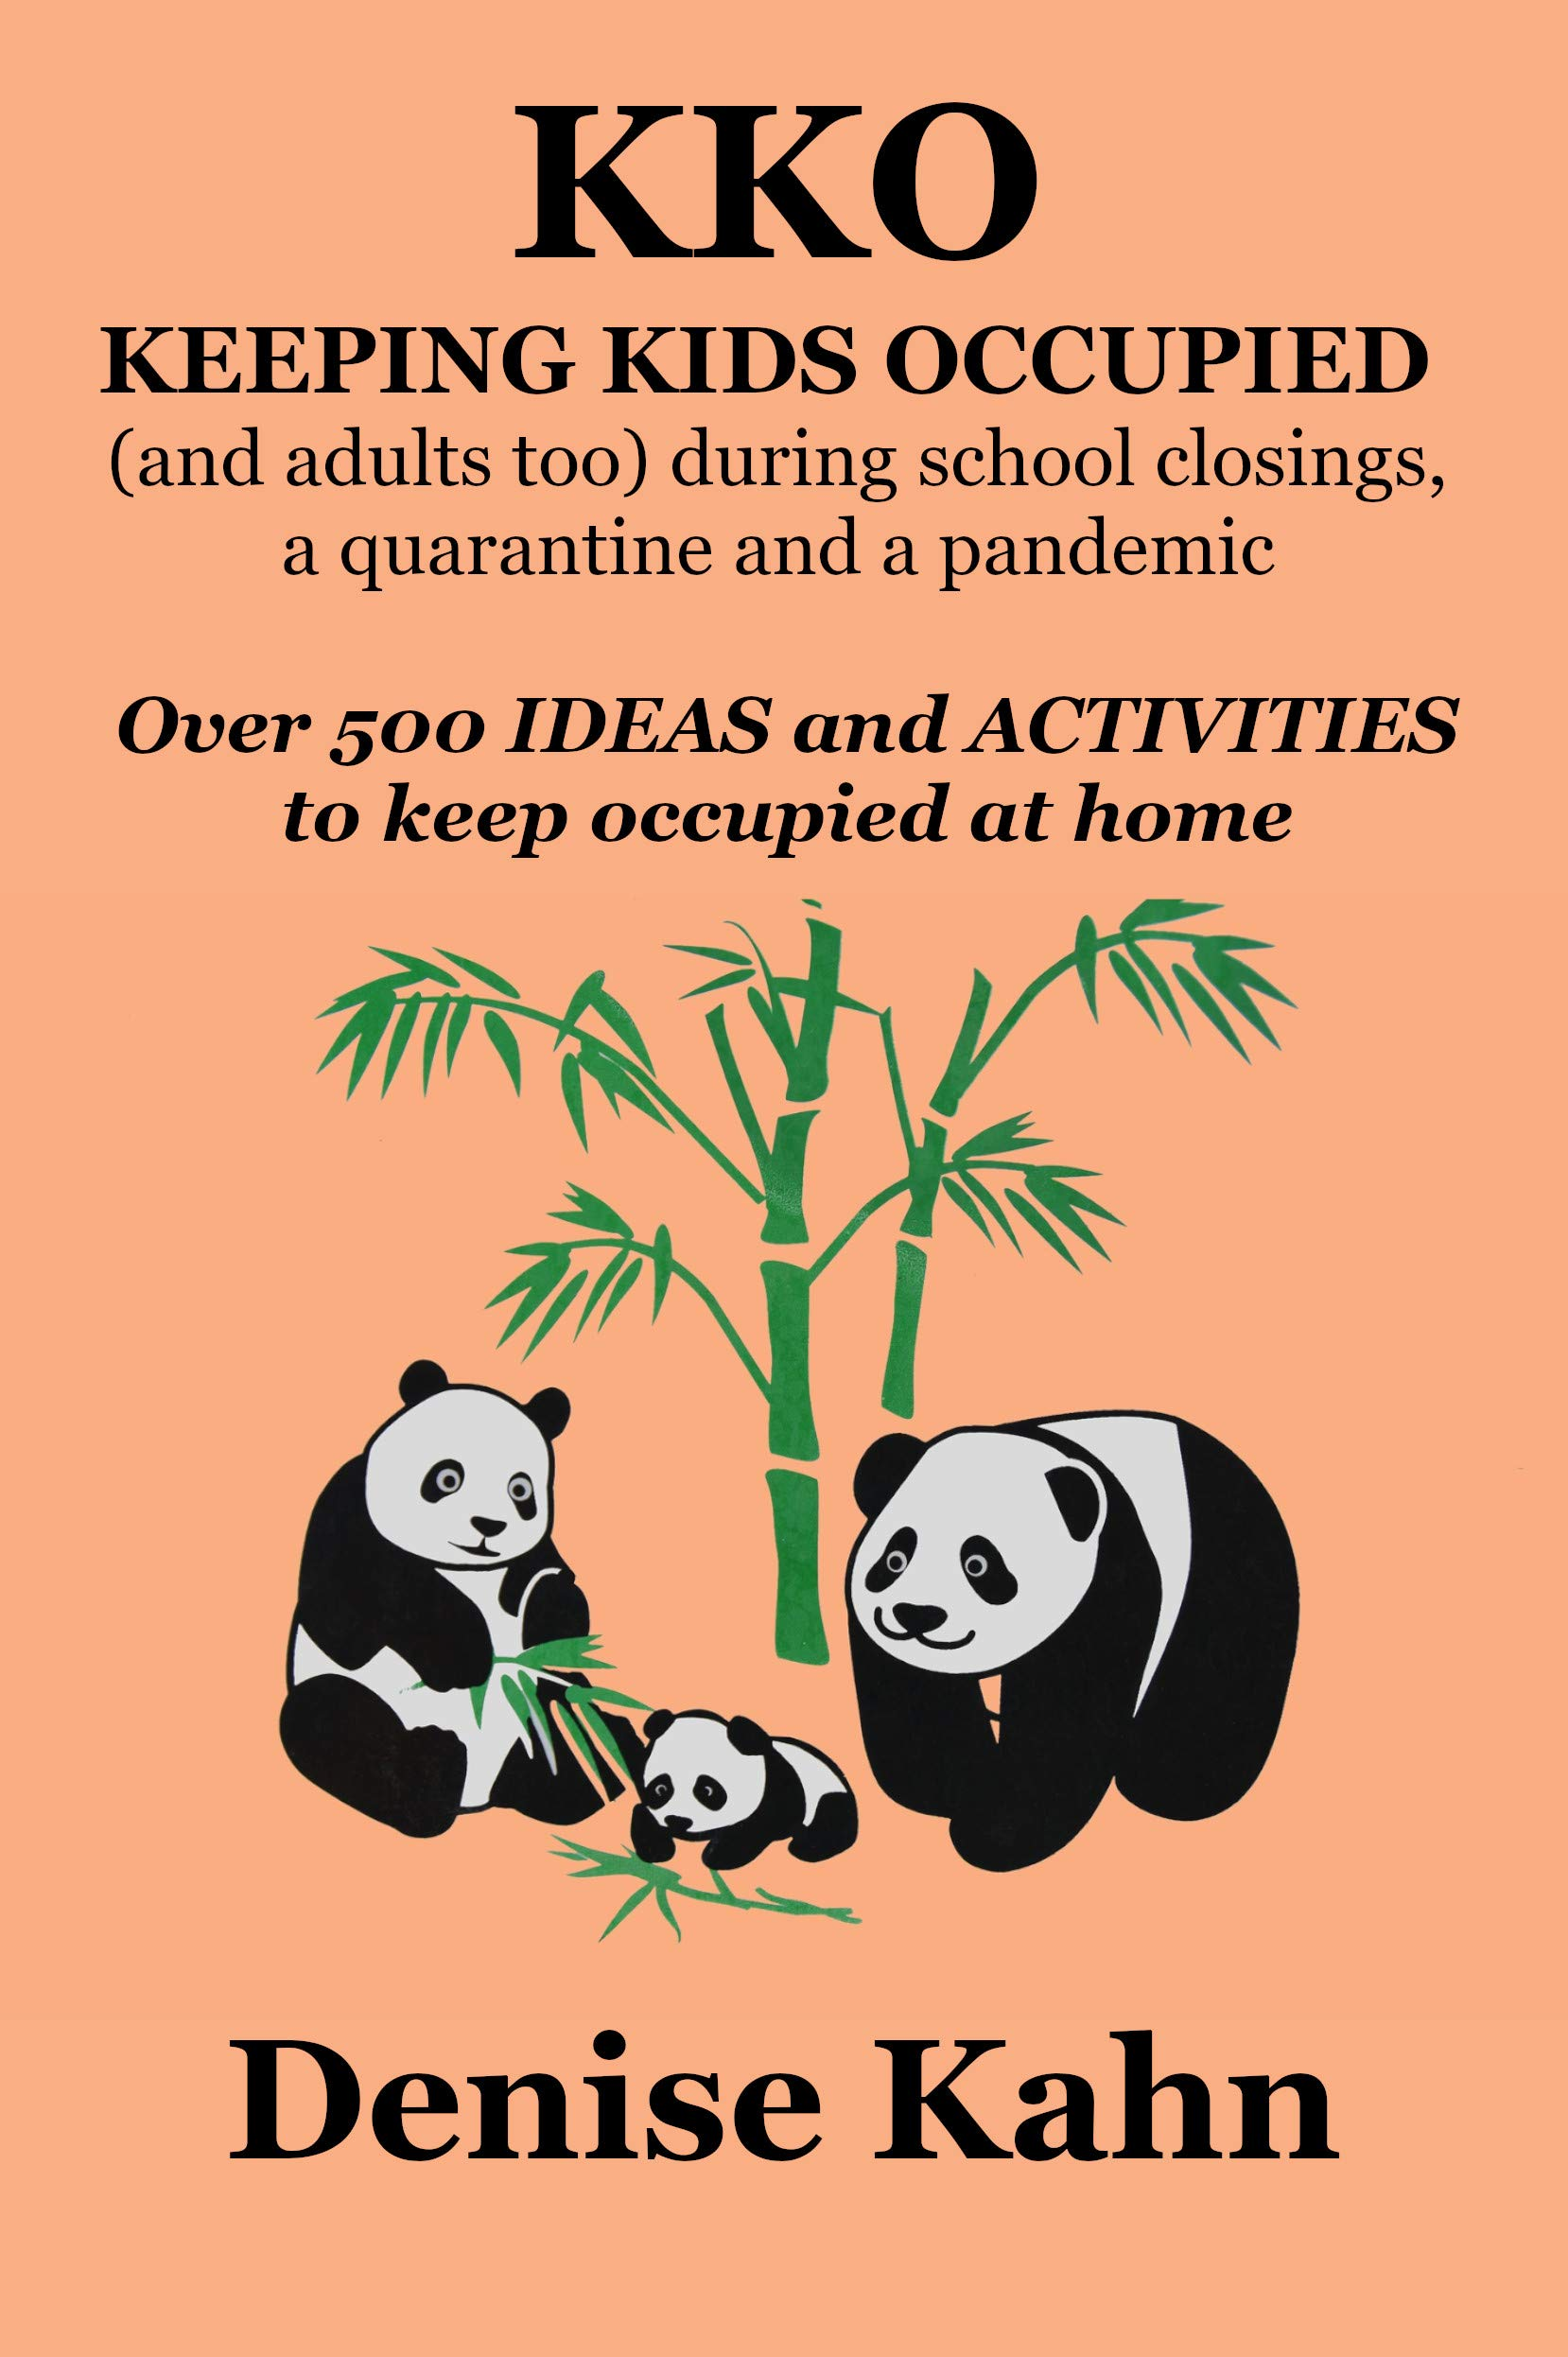 KKO Keeping Kids Occupied (and adults too) during school closings, a quarantine and a pandemic: Over 500 IDEAS and ACTIVITIES to keep occupied at home